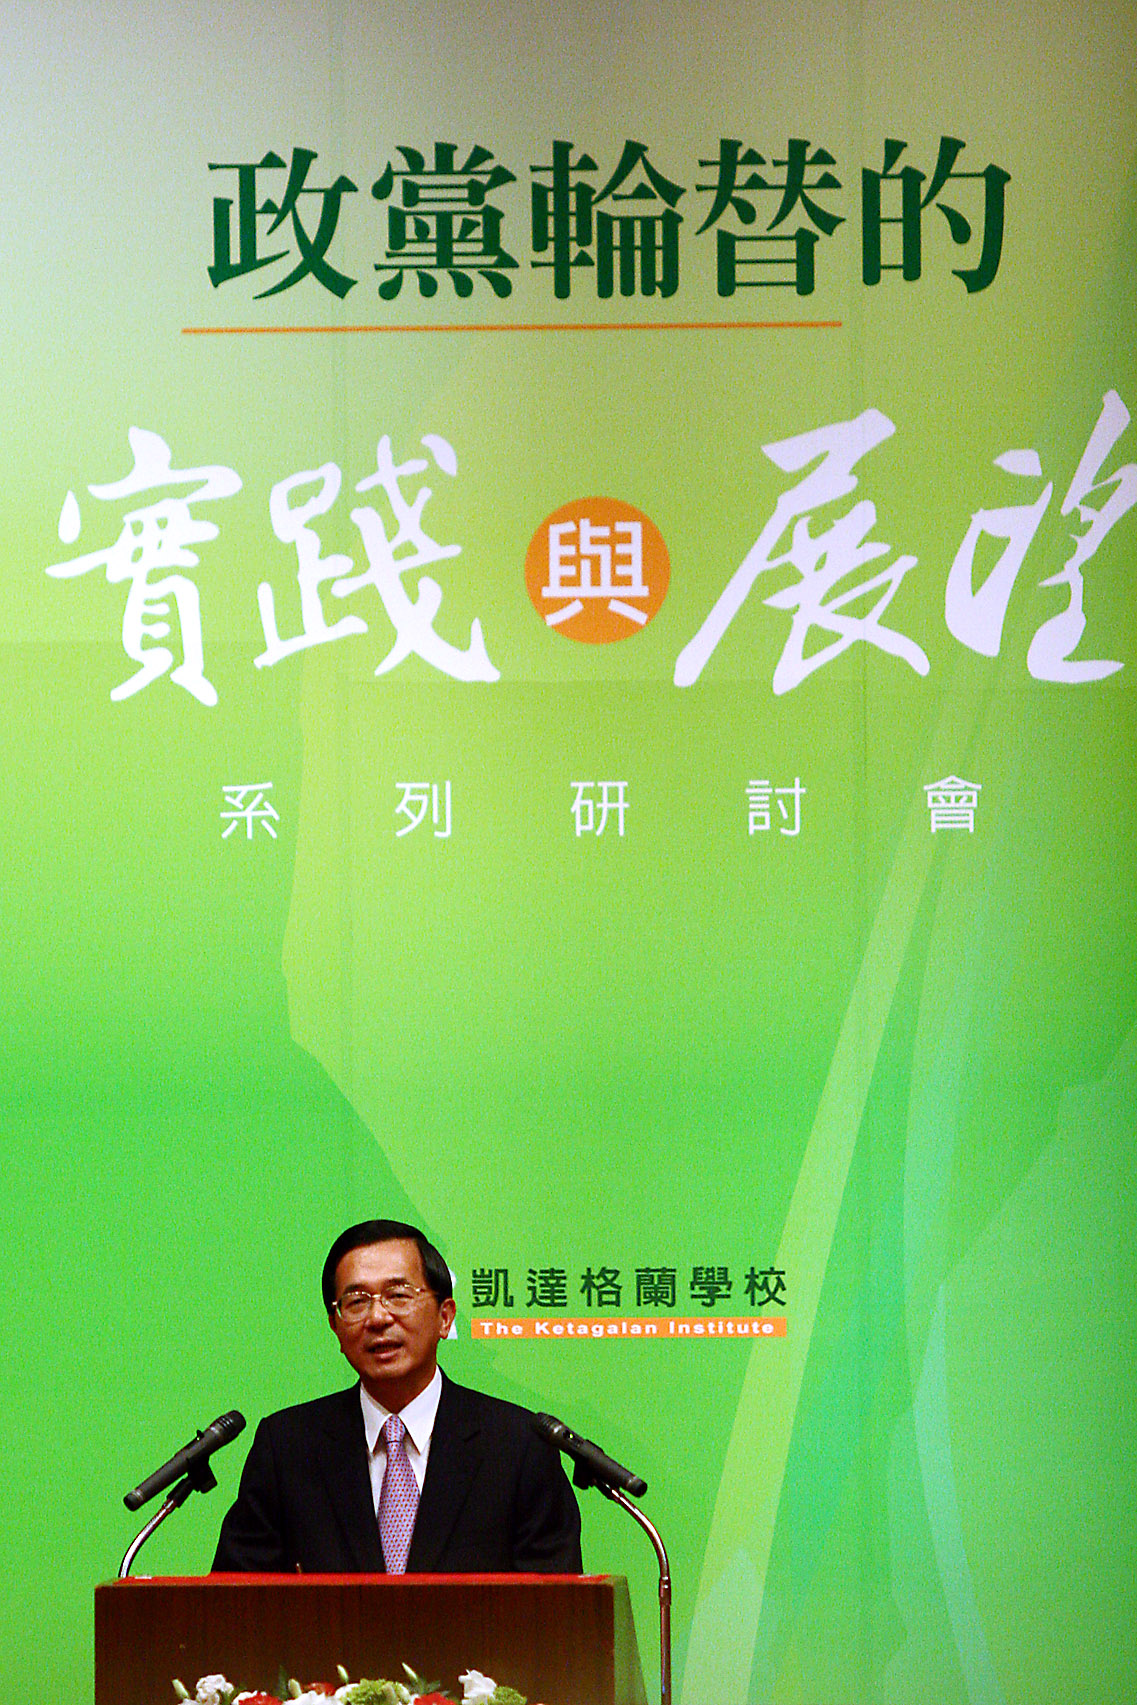 President Chen Shui-bian said at a forum discussion that eight years are not enough for the democratic ideal of rotation of parties--eight more years ...